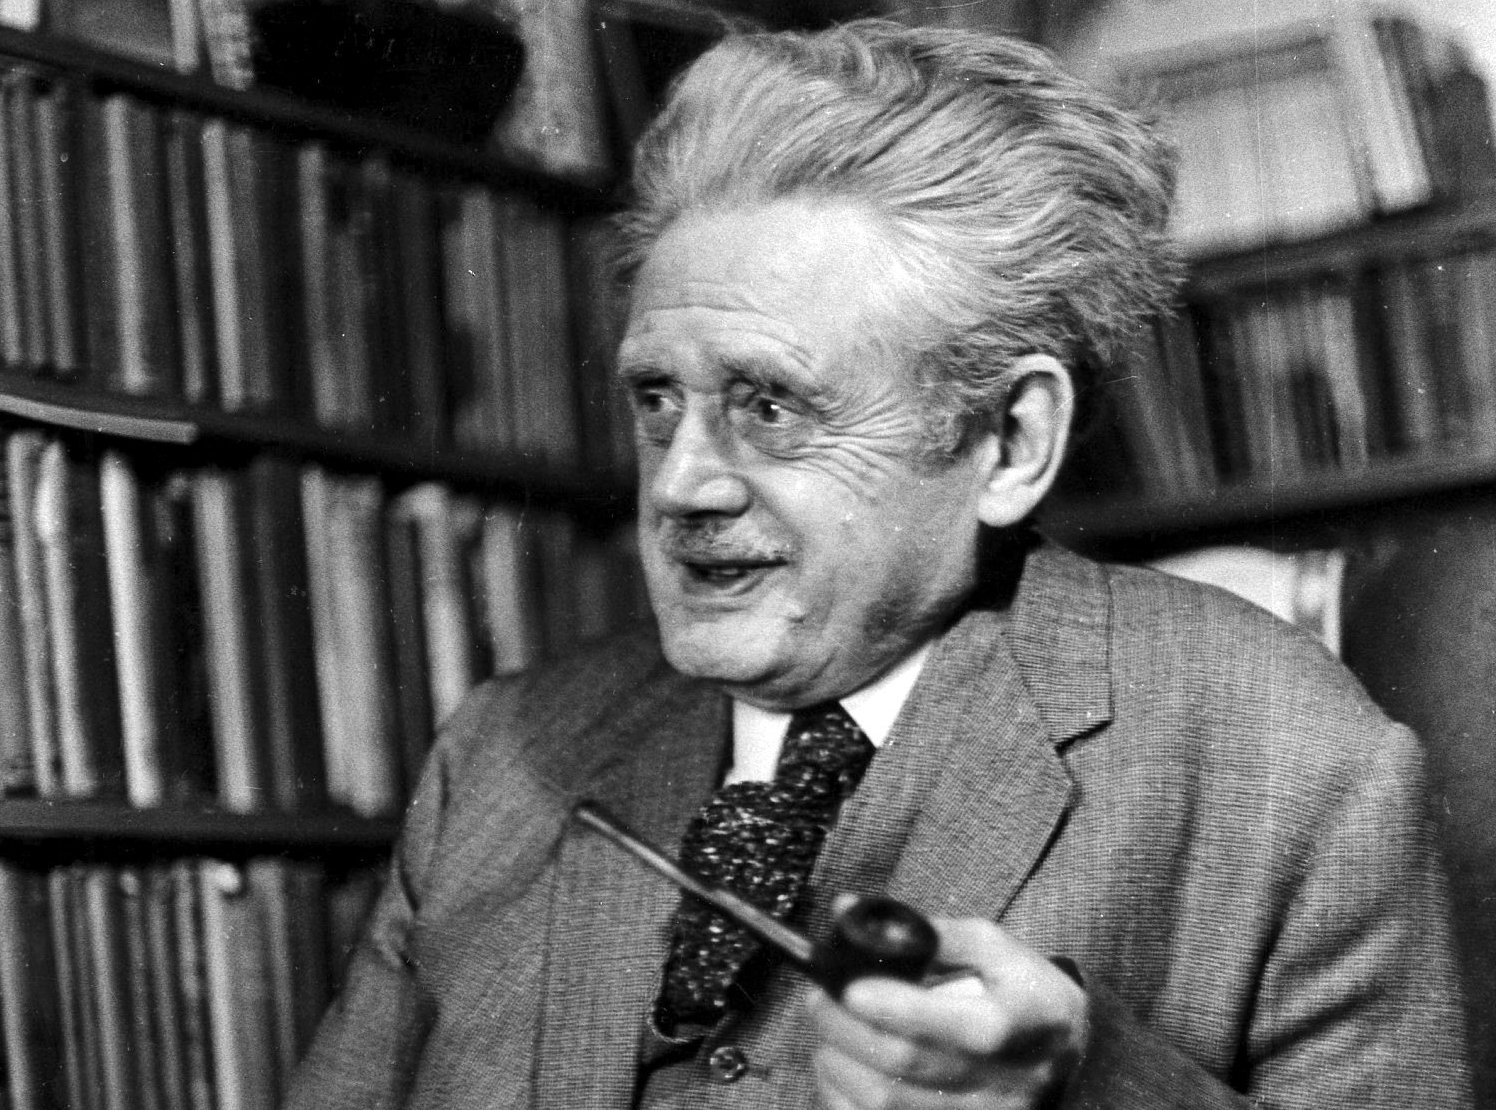 Hugh MacDiarmid in his home in 1968